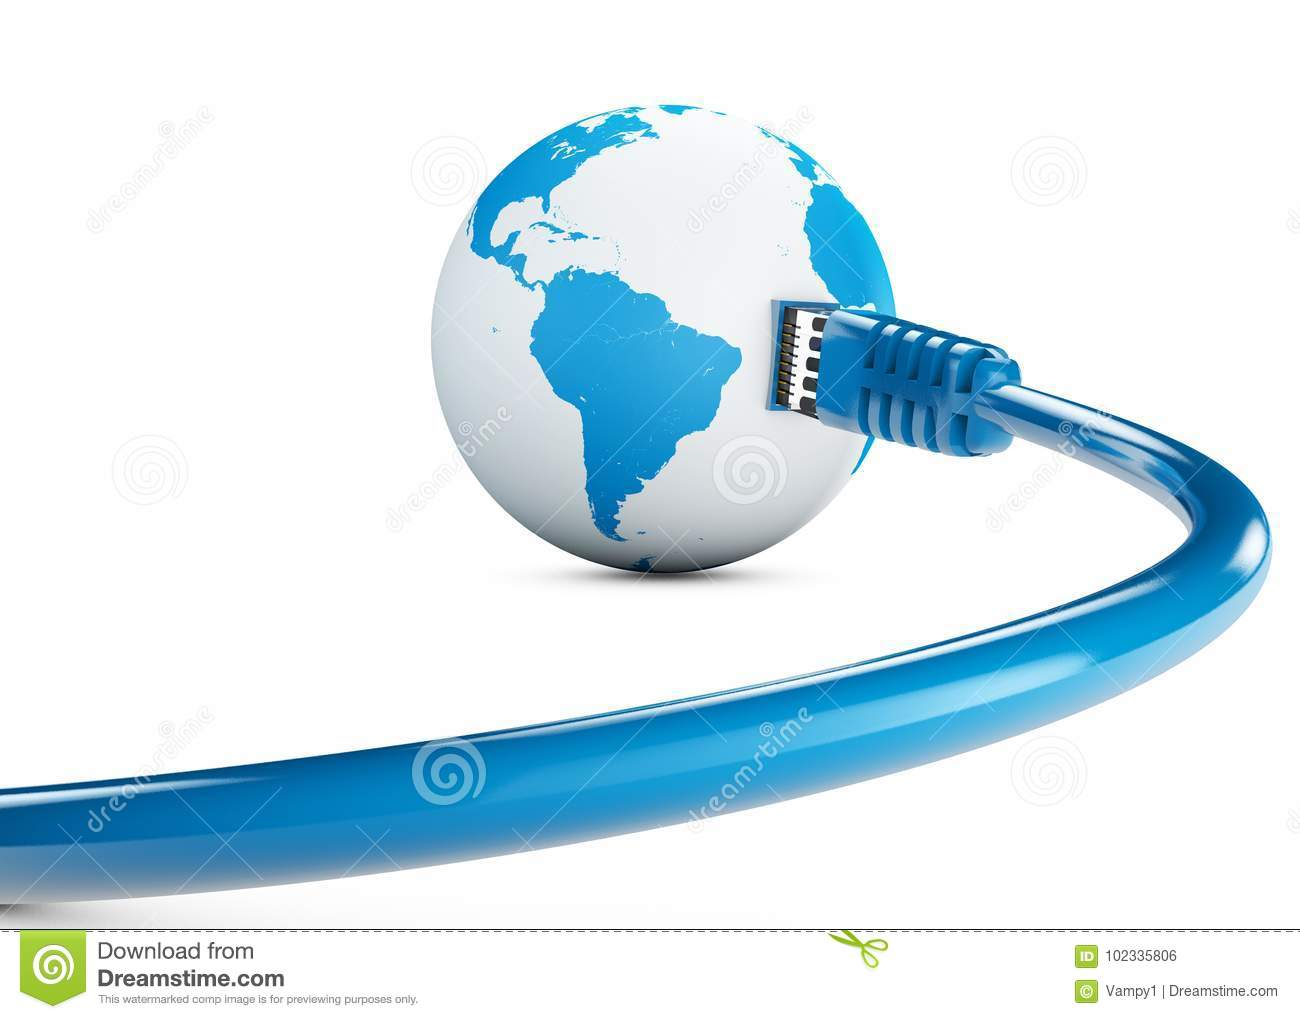 Ethernet cable, internet connection, bandwidth. The world on the web. World Connections, Globe